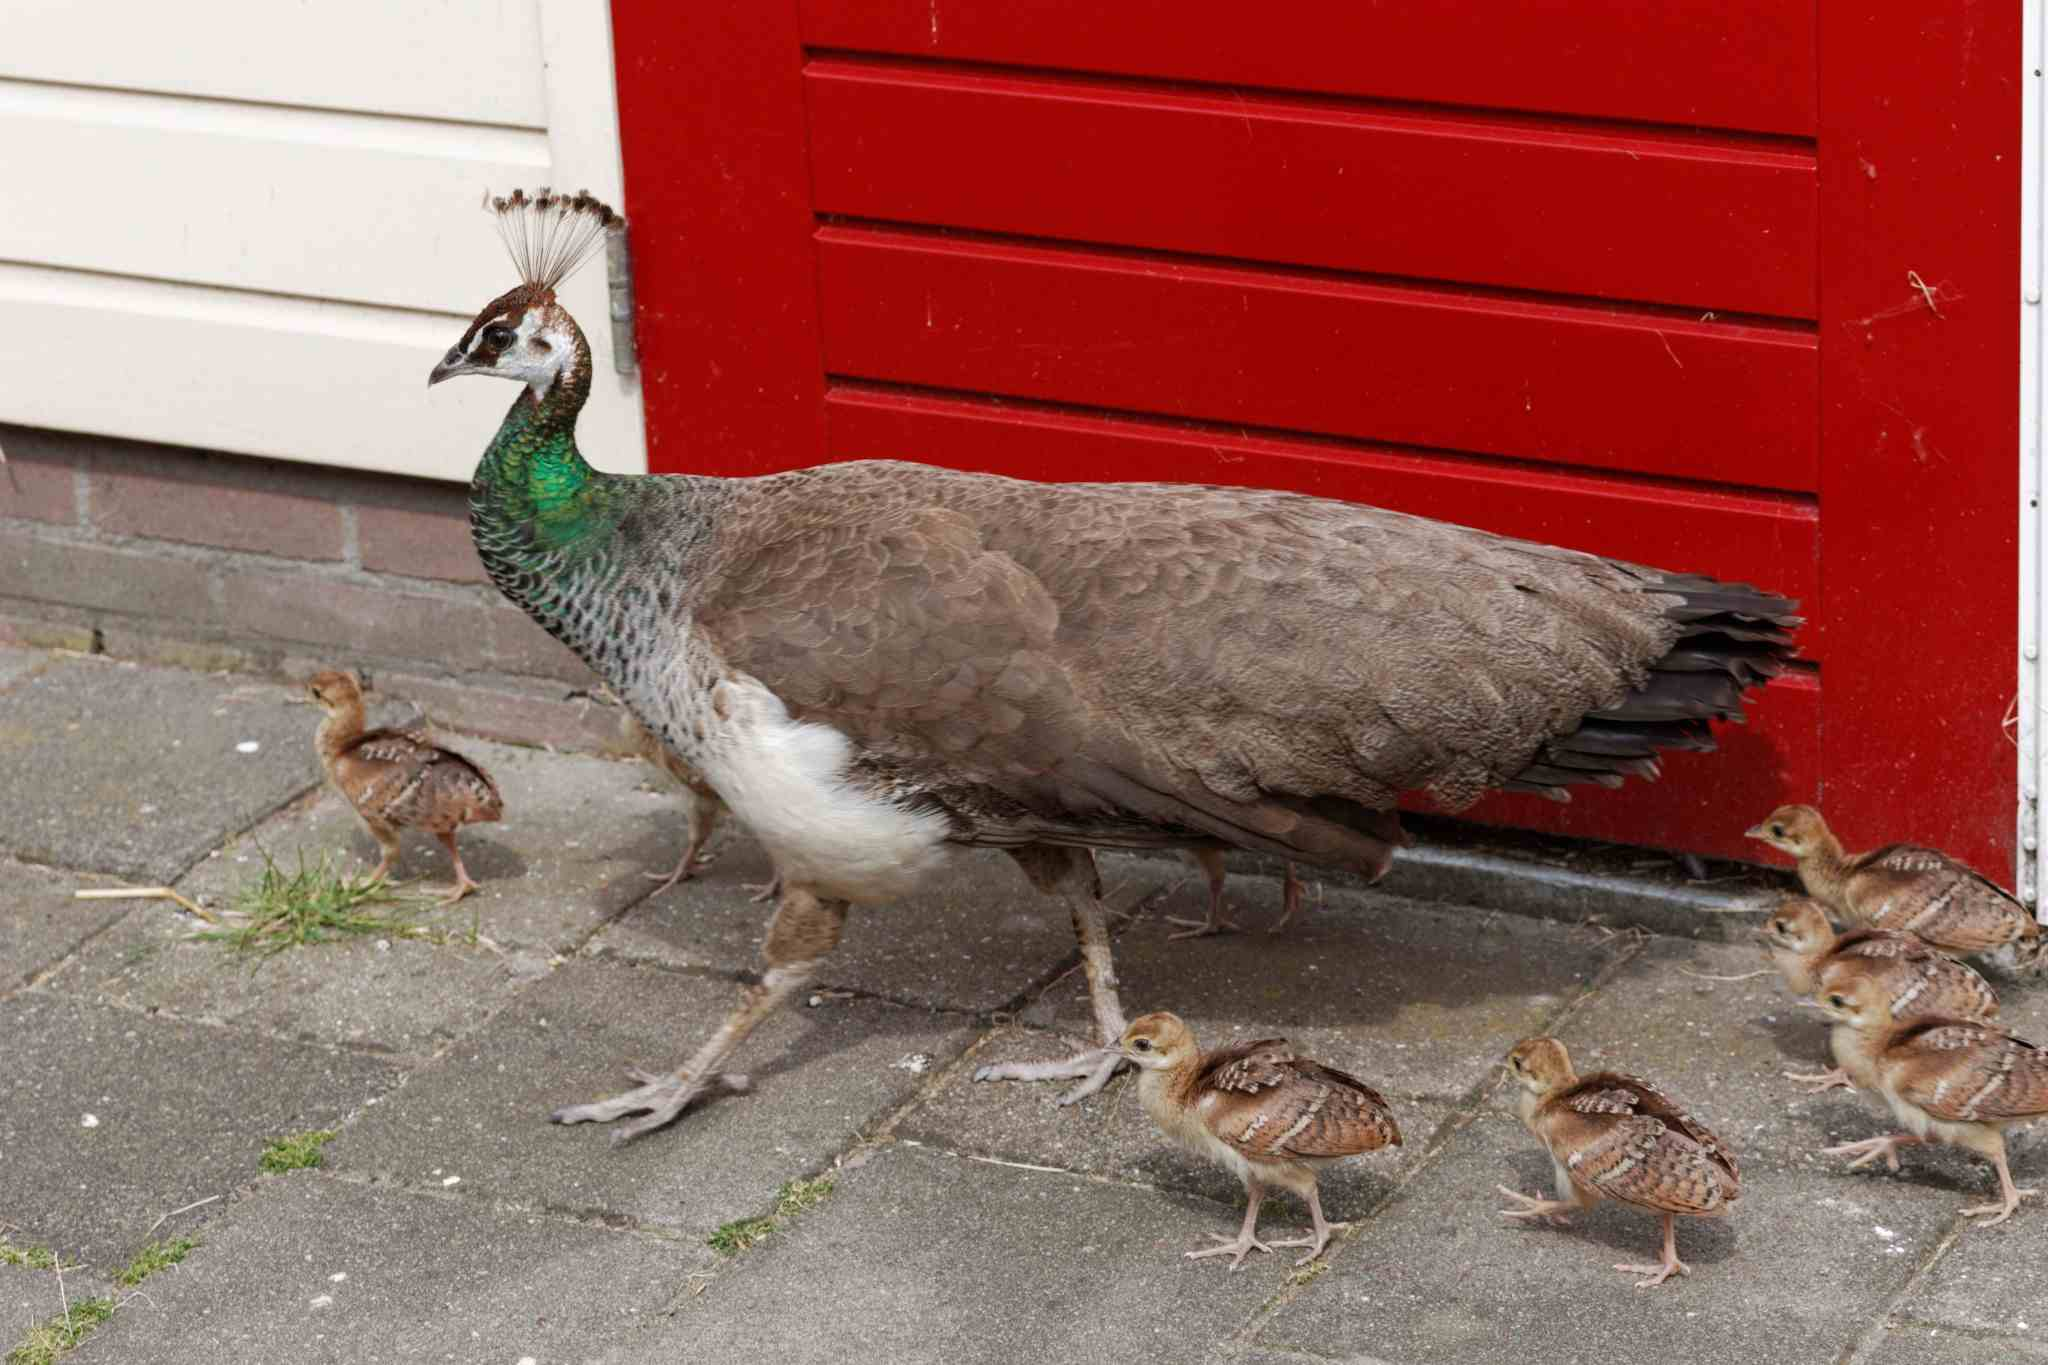 Green peahen with chicks